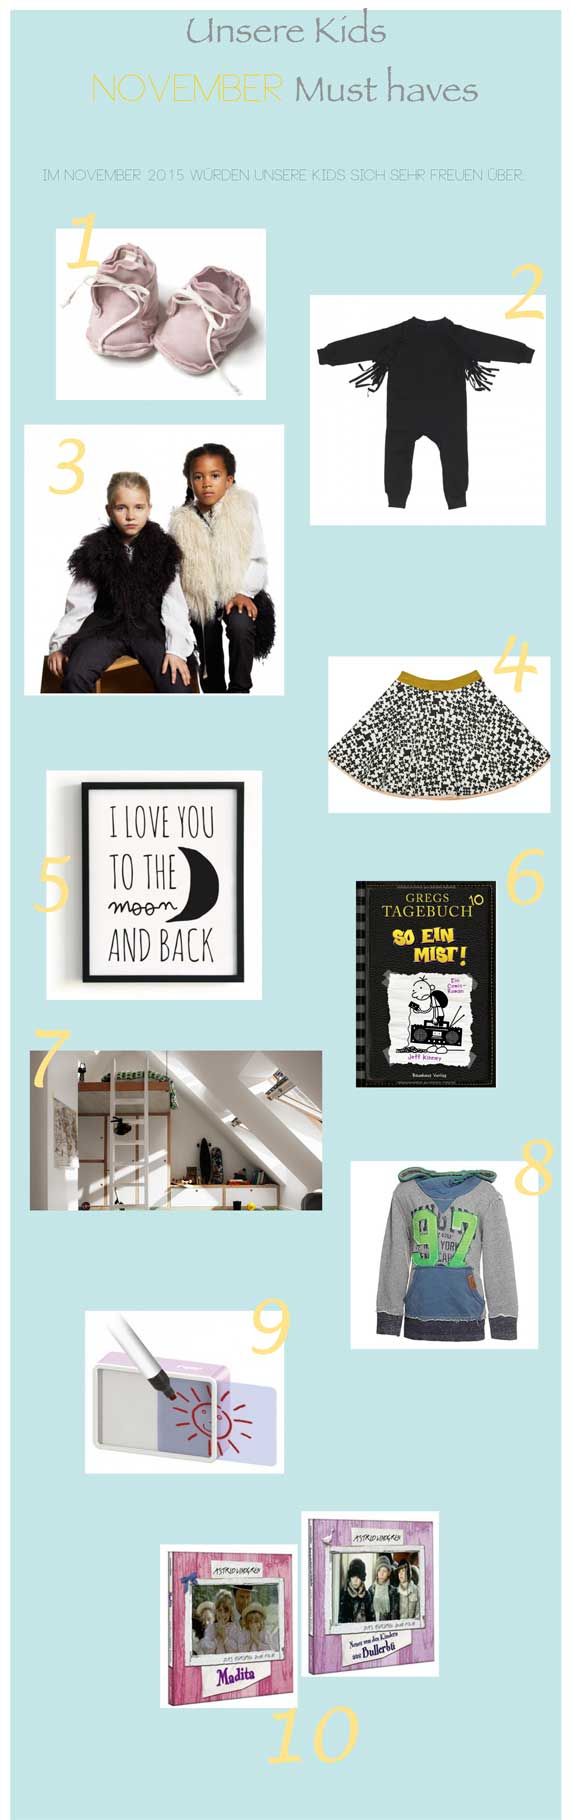 November-Kids-Must-haves-2015